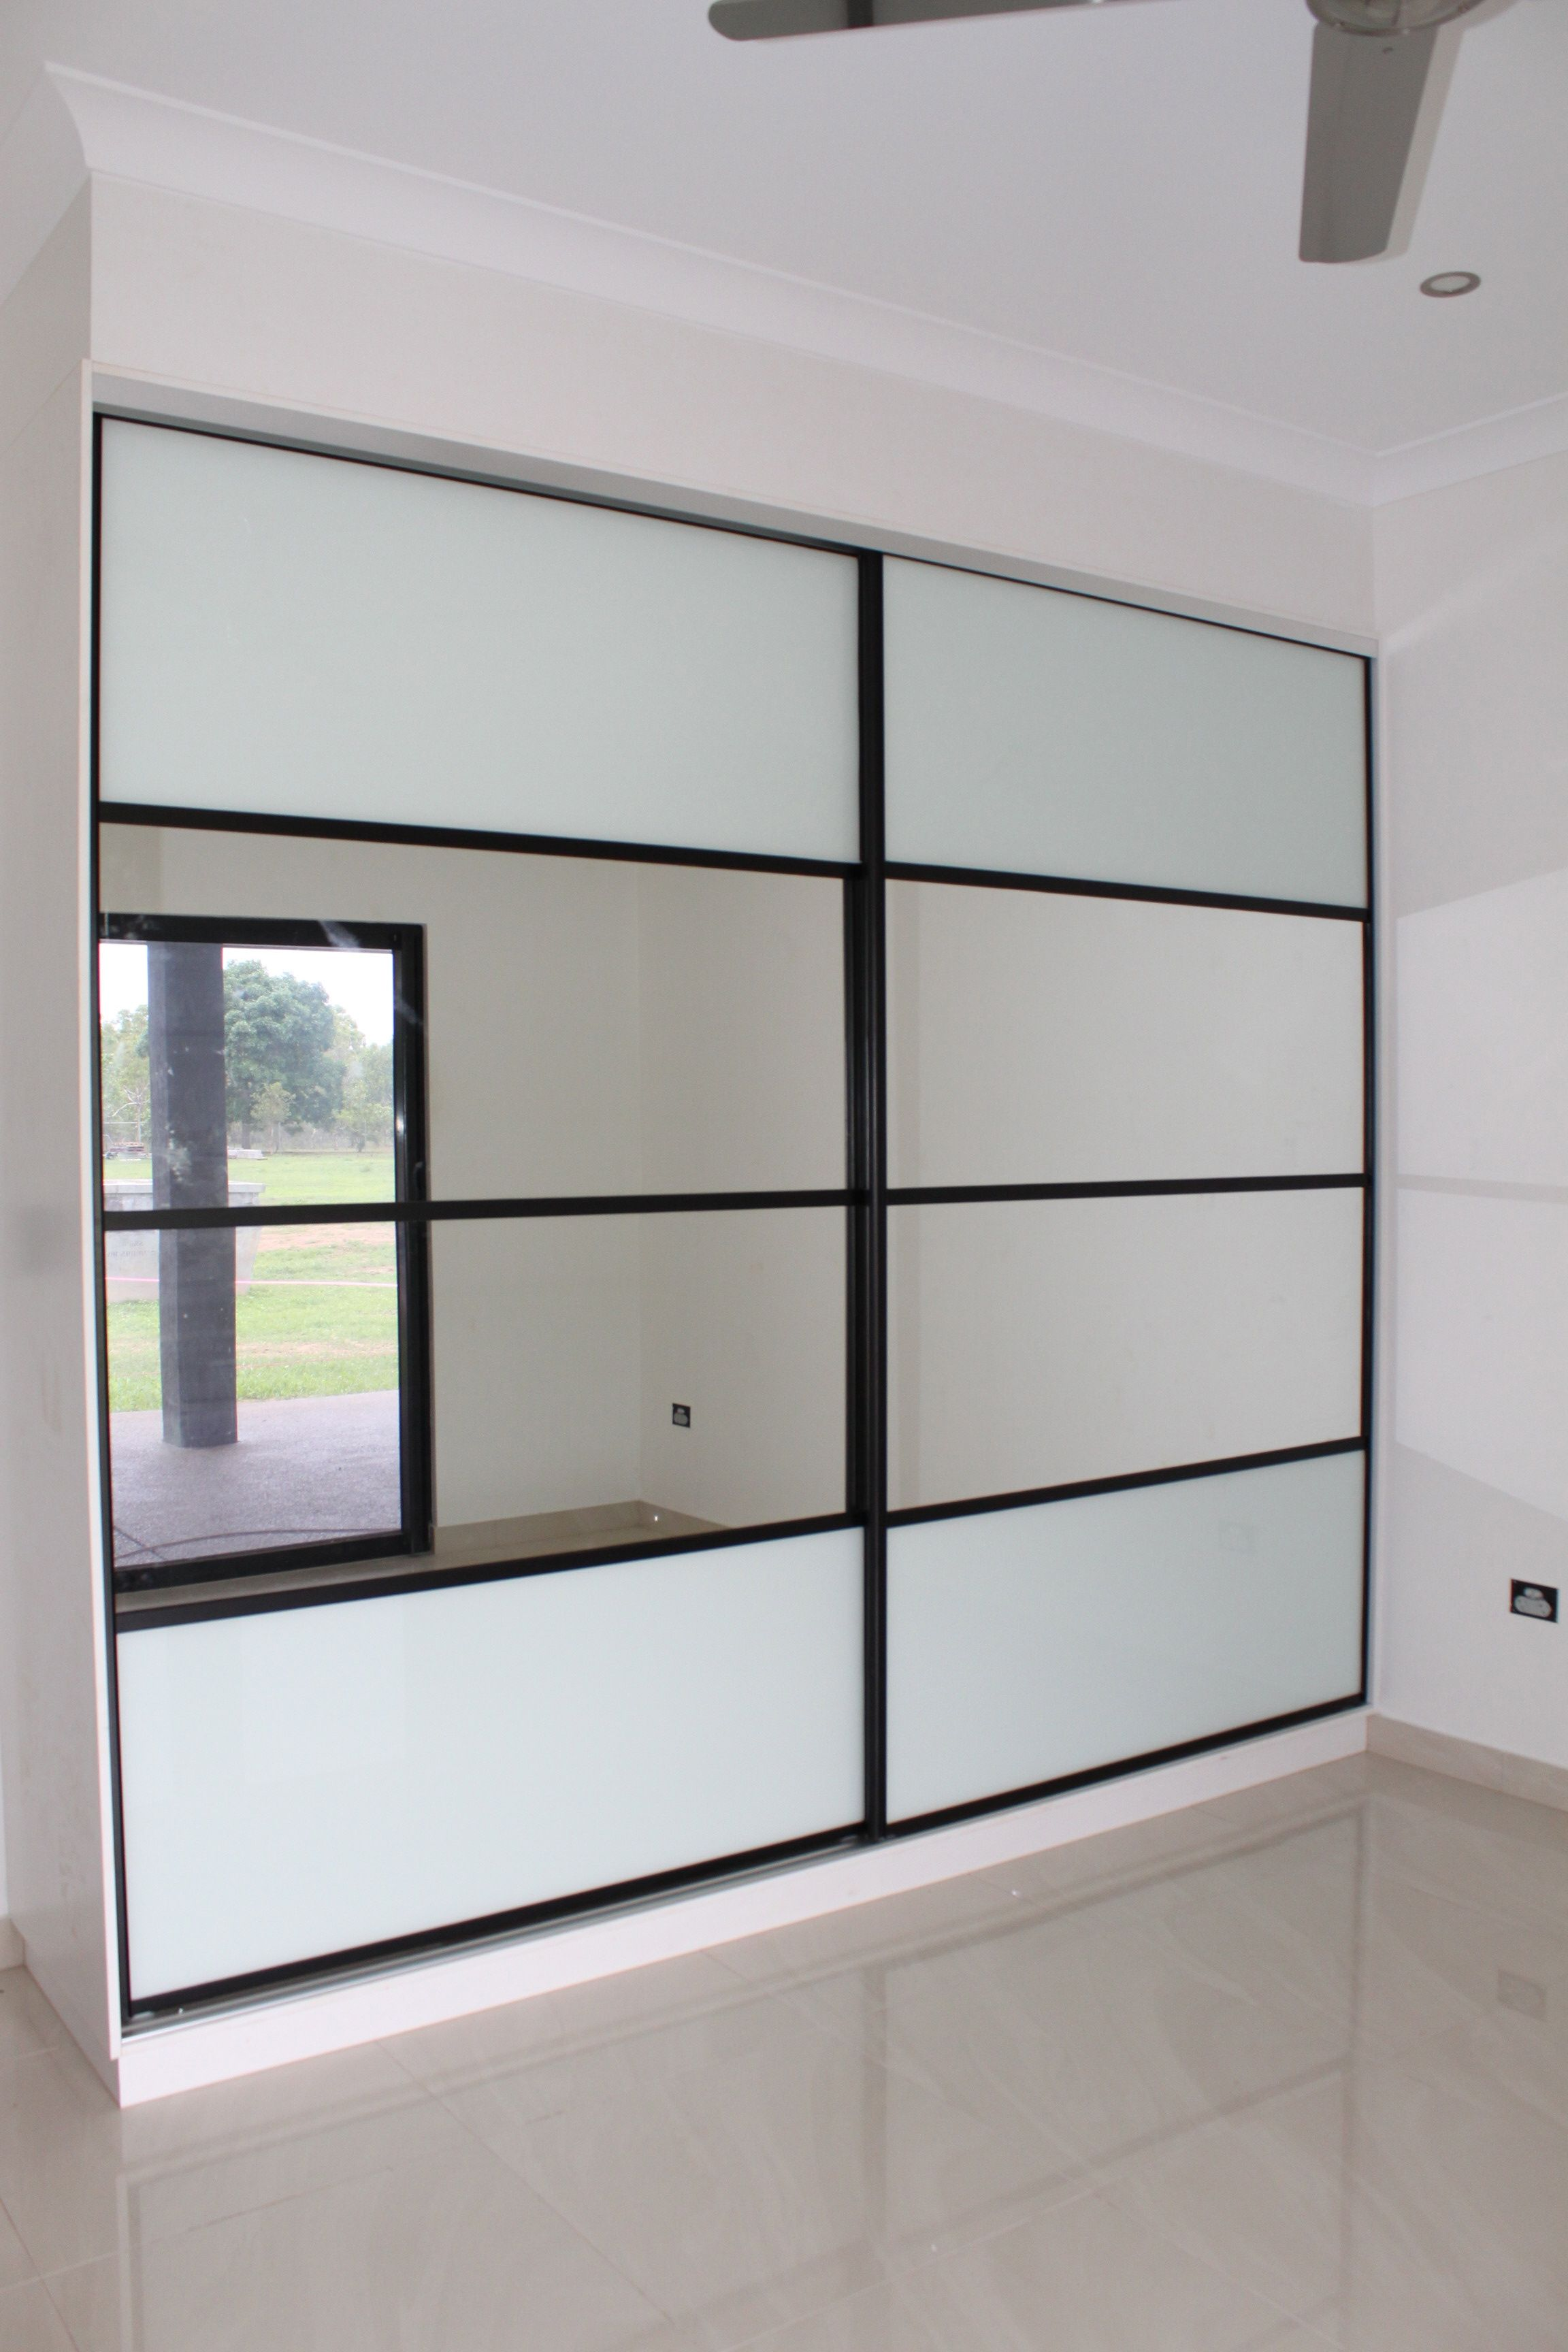 3 panel mirror sliding closet doors - Sliding Wardrobe Doors Composite 4 Panel Doors White Glass Mirror Black Frames